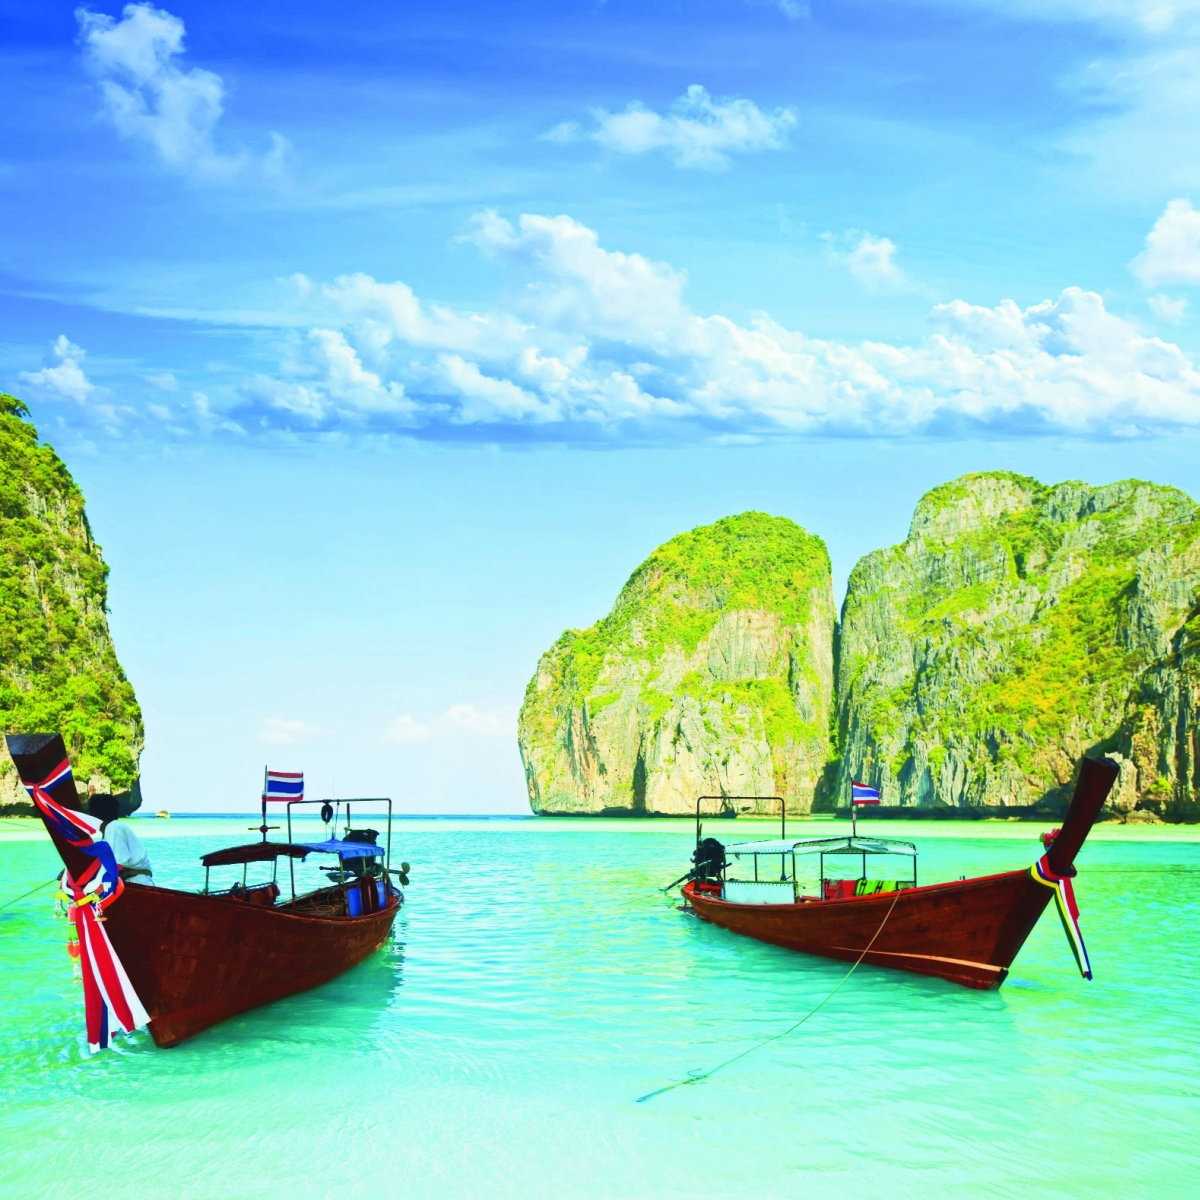 Thailand: not just for backpackers - why not try it with your family?